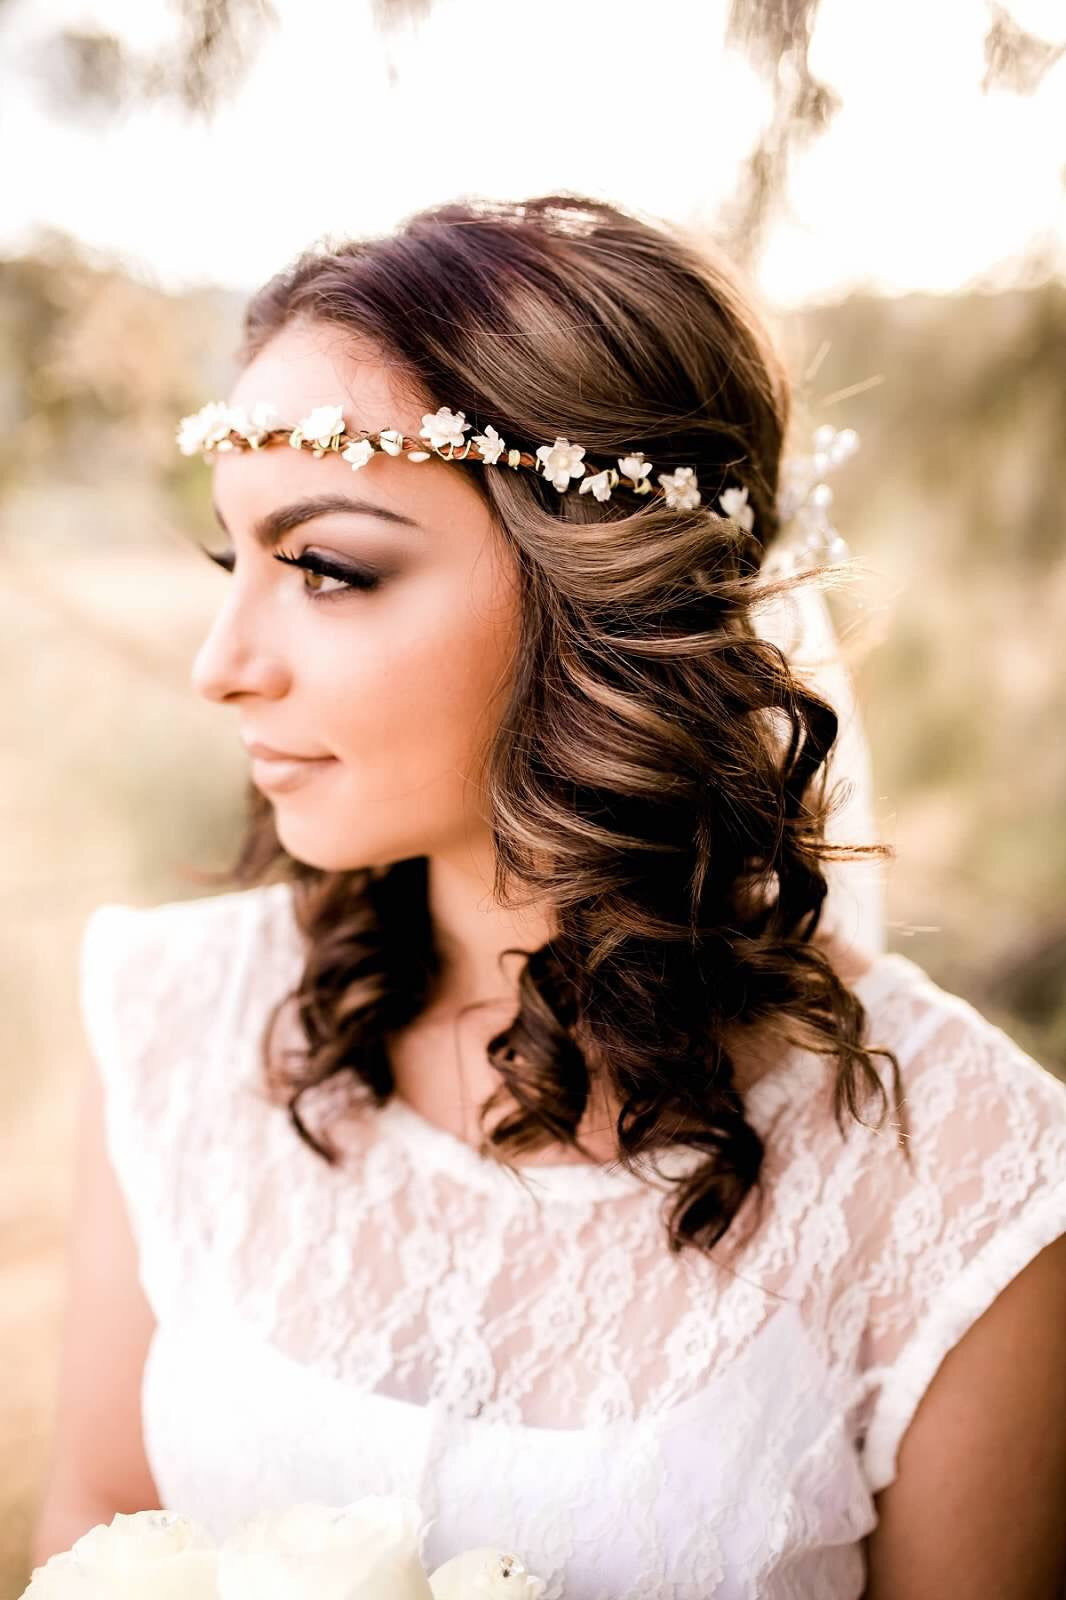 Rustic flower crown d1020 vividbloom rustic flower crown d1020 izmirmasajfo